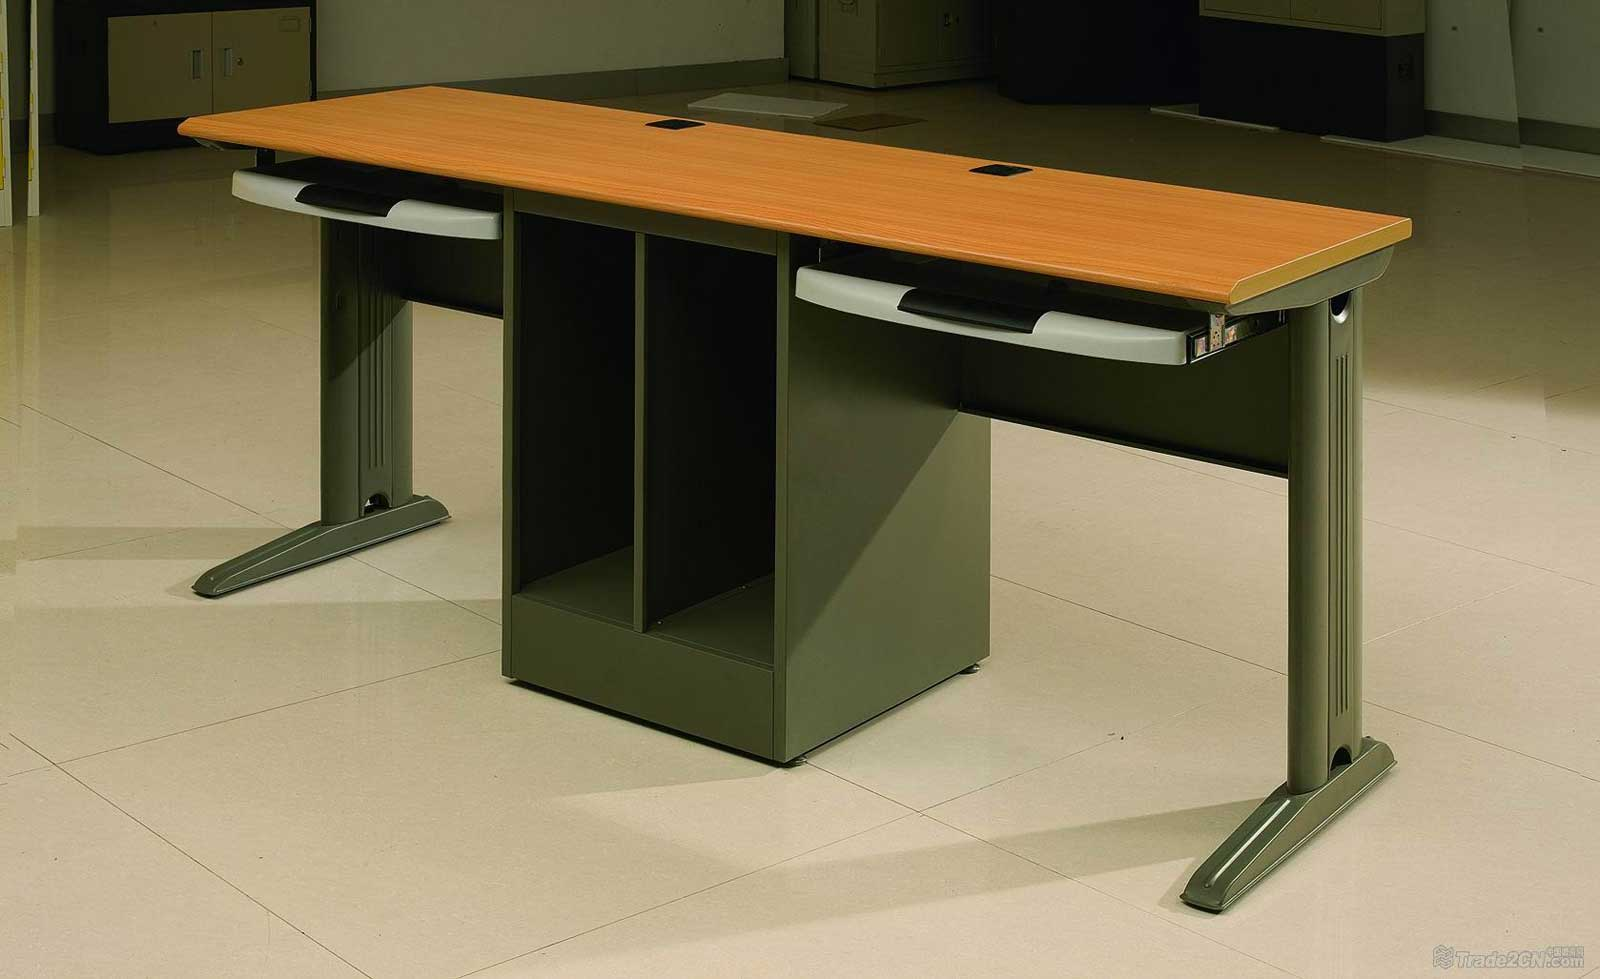 Wooden Double computer desk ikea Plans PDF Download Free do i need